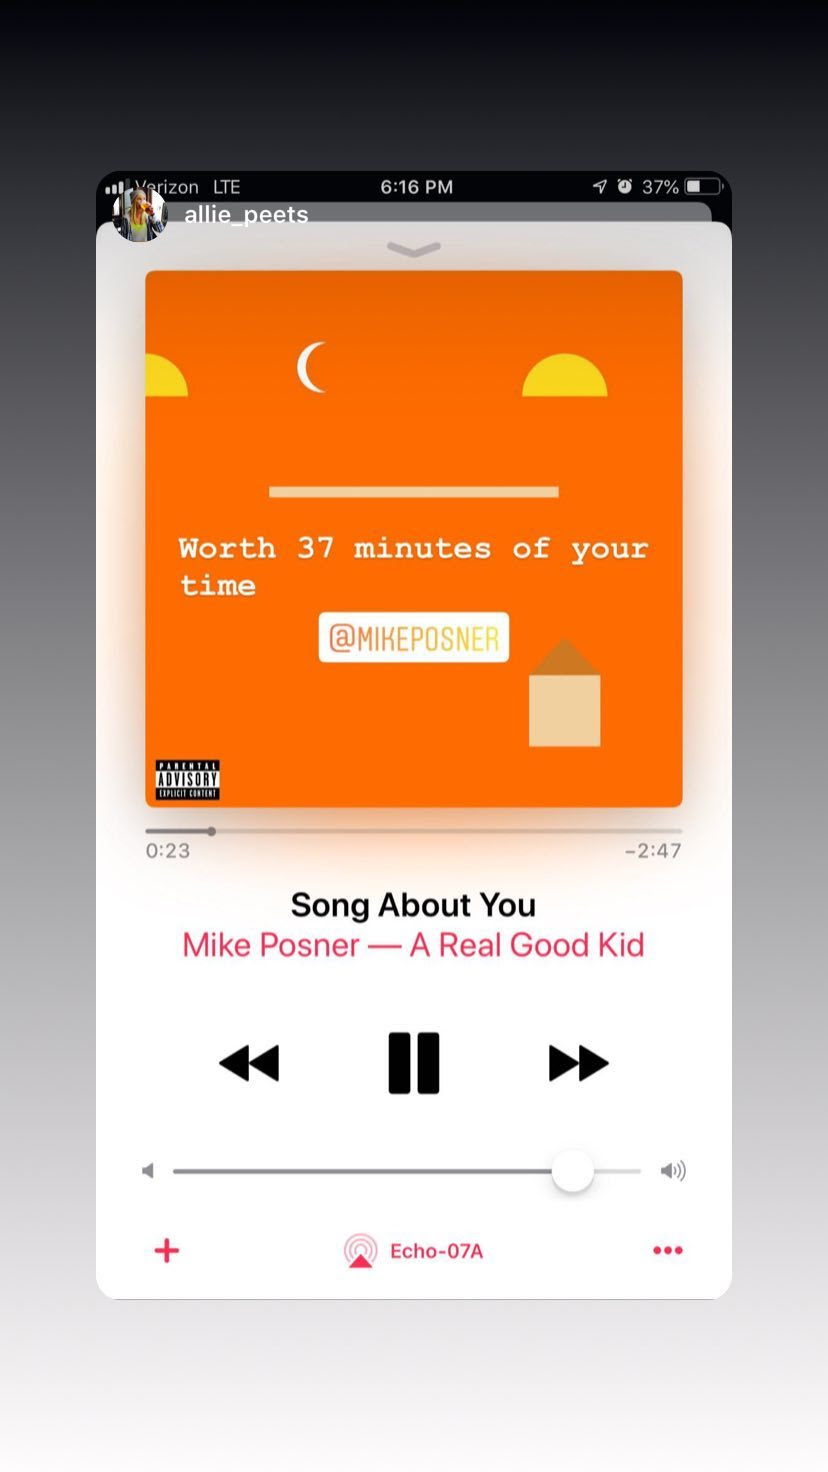 "🚶🚶 Mike Posner 'Moves On"" Across America and Gets Social Support from Justin Bieber, Ty Dolla $ign, Millie Bobby Brown 🚶🚶"